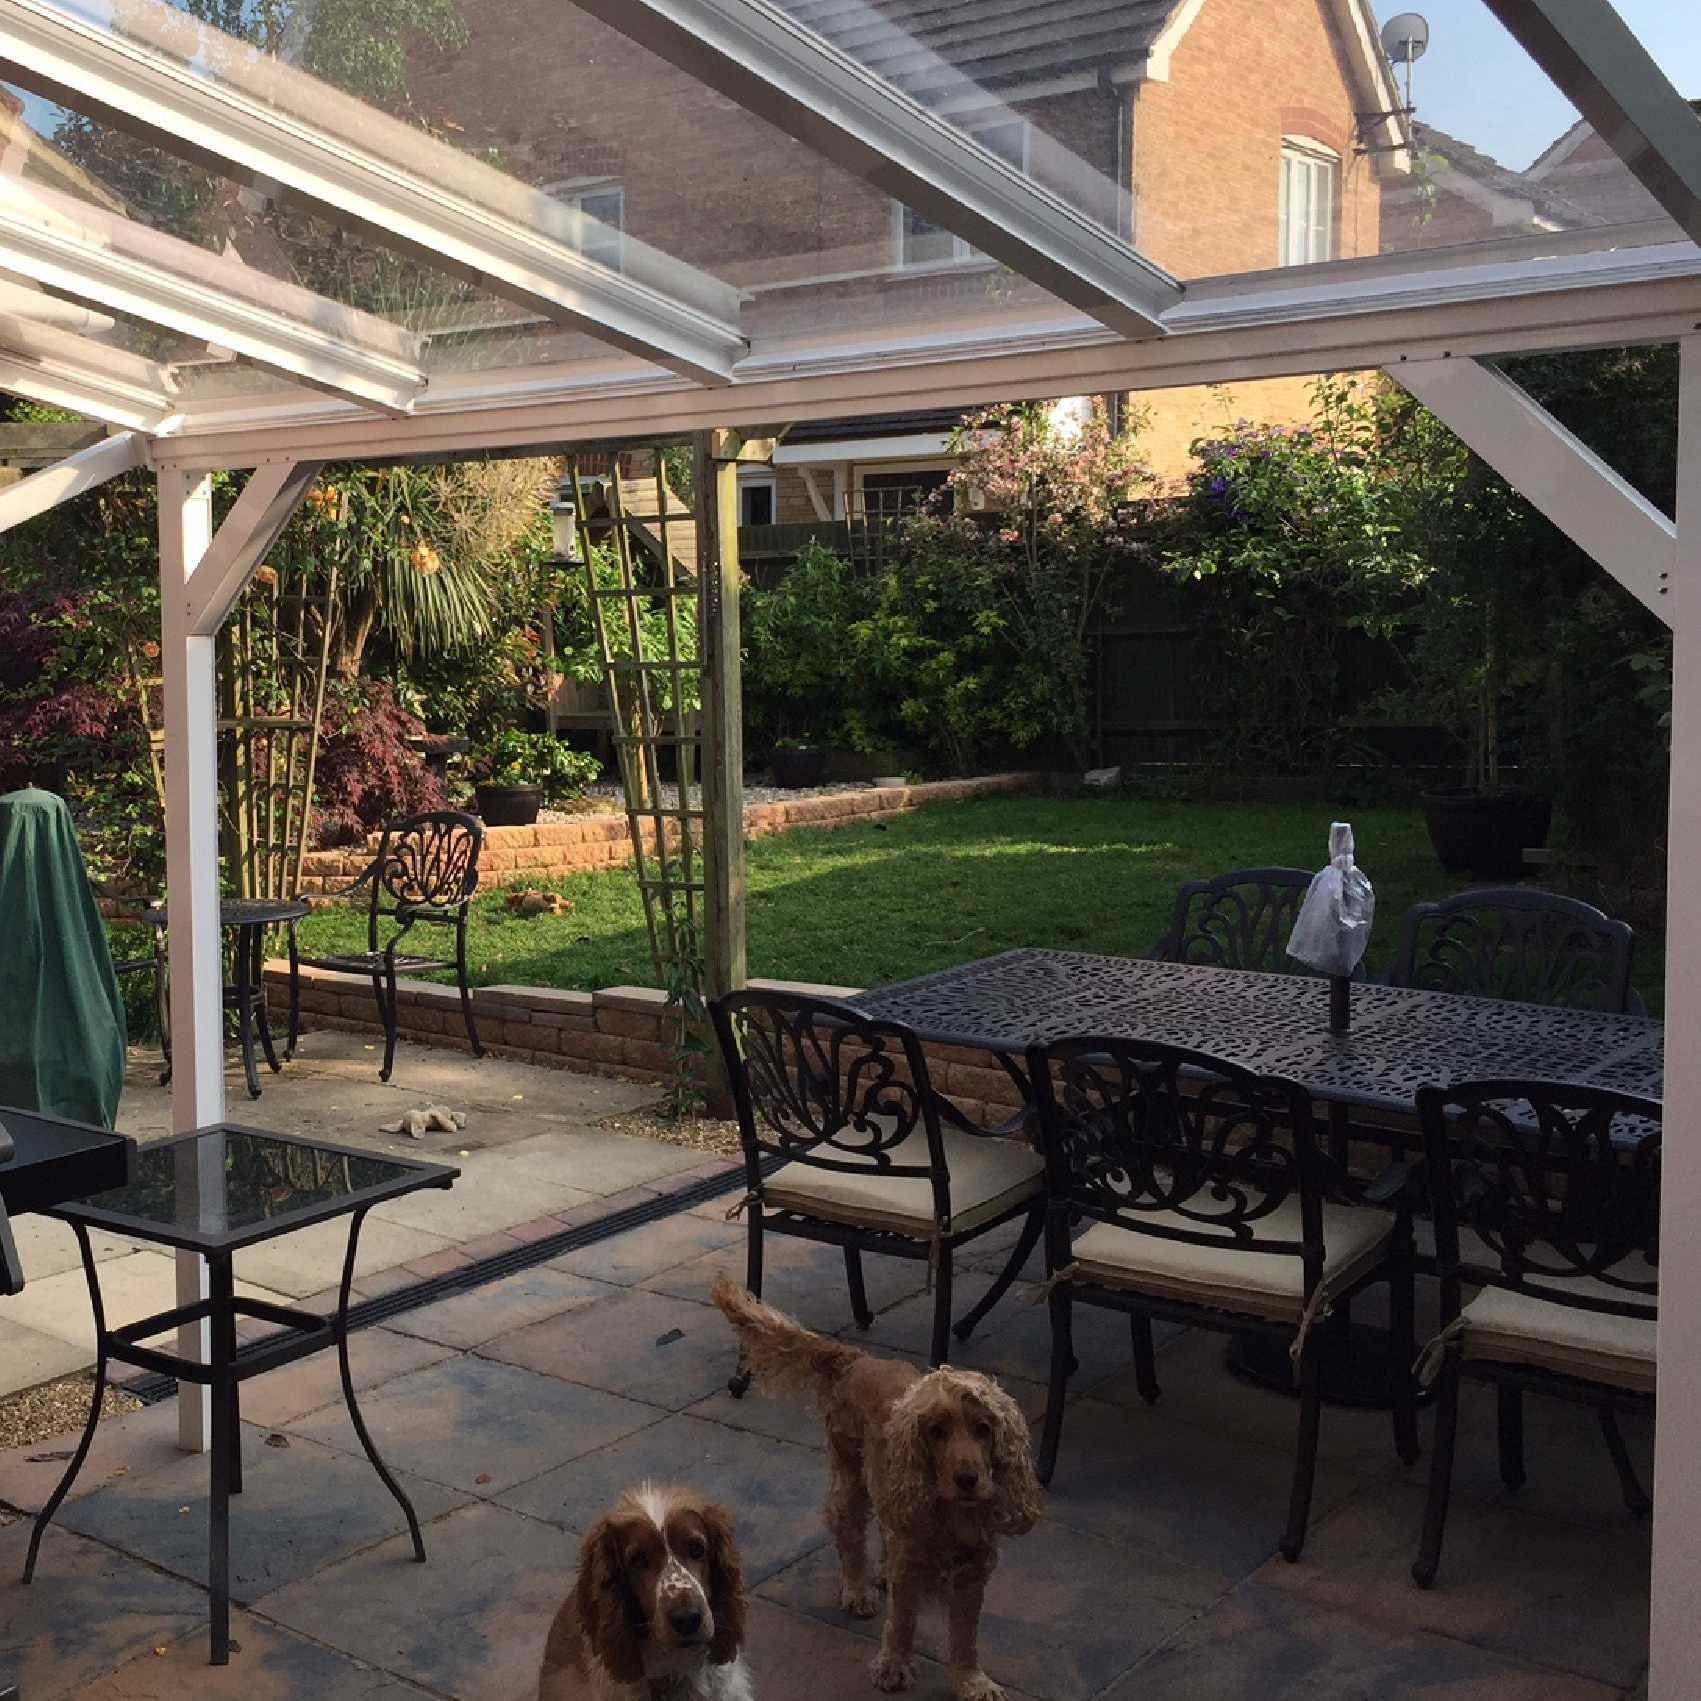 Affordable Omega Smart White Lean-To Canopy UNGLAZED for 6mm Glazing - 6.3m (W) x 2.0m (P), (4) Supporting Posts